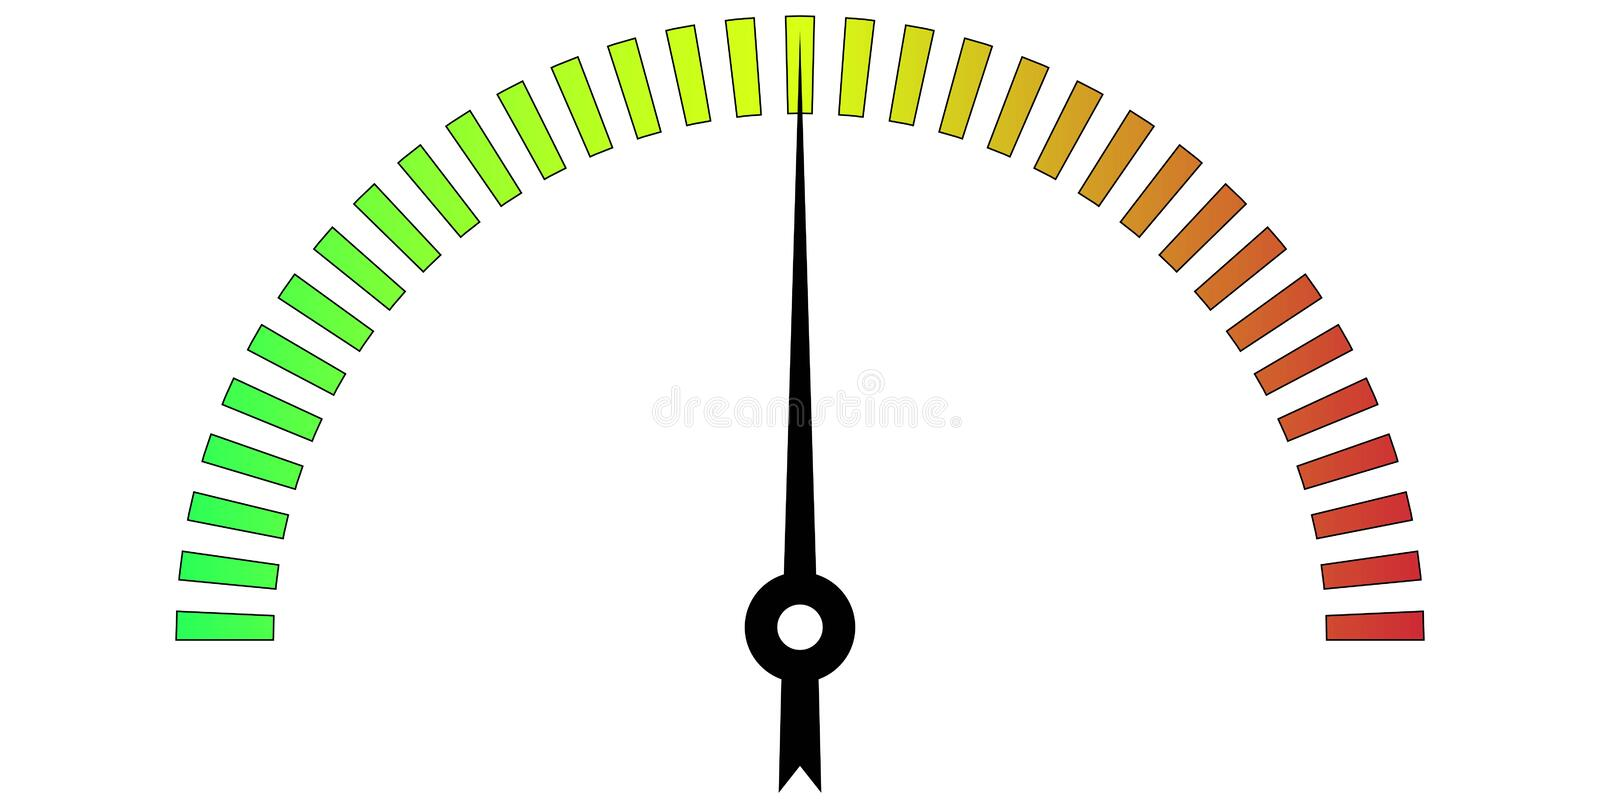 Template meter with color scale. Measuring temperature with a gradient of colors on the scale and realistic arrow showing the measurement data, vector template vector illustration